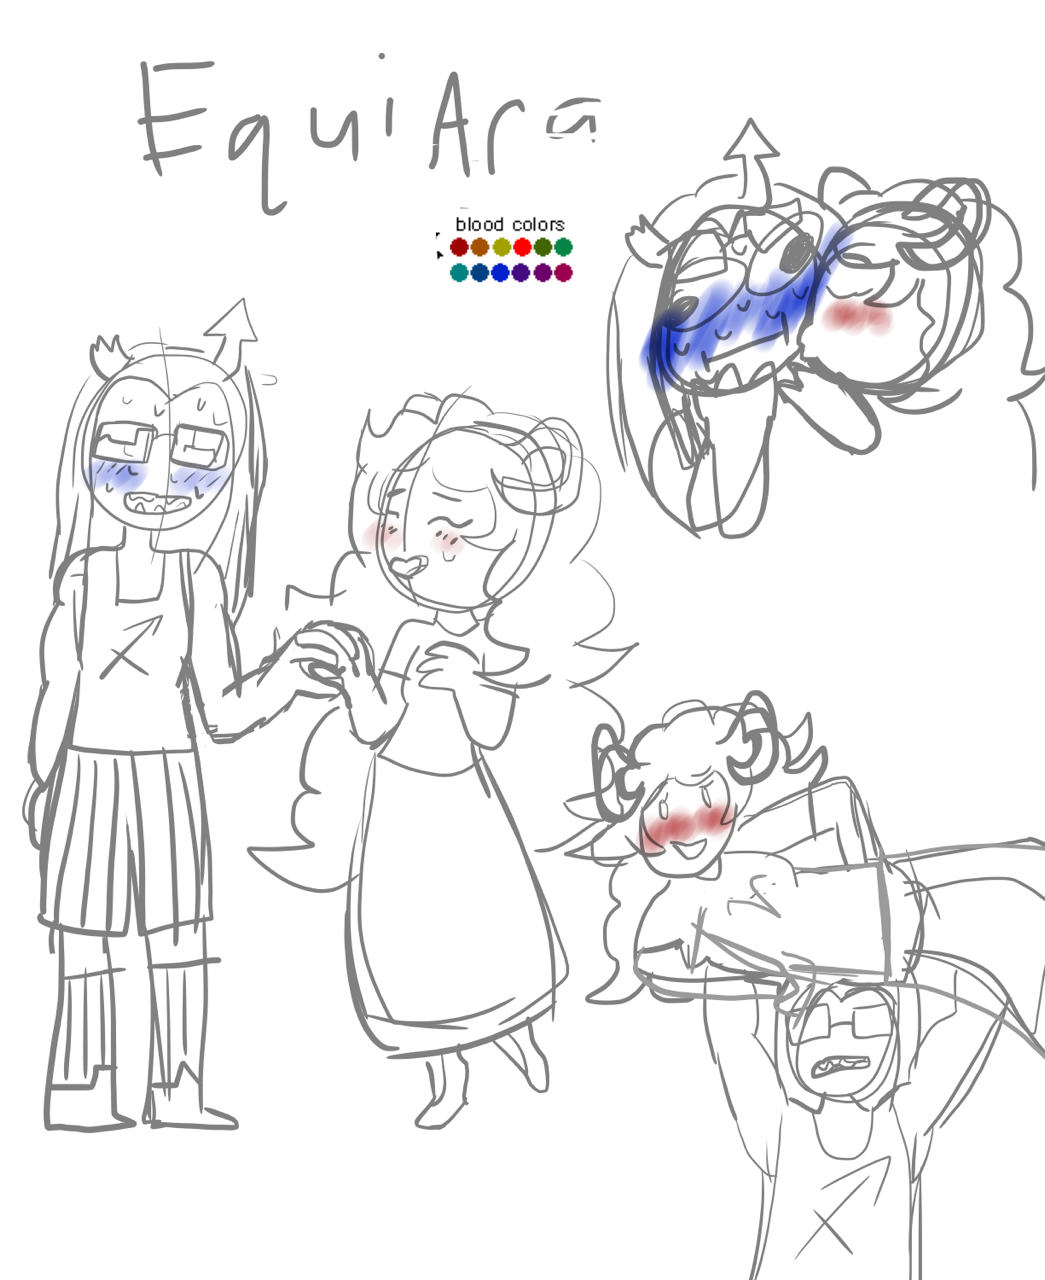 aradia_megido blush carrying dyingbluerose equius_zahhak holding_hands iron_maiden kiss redrom shipping sketch